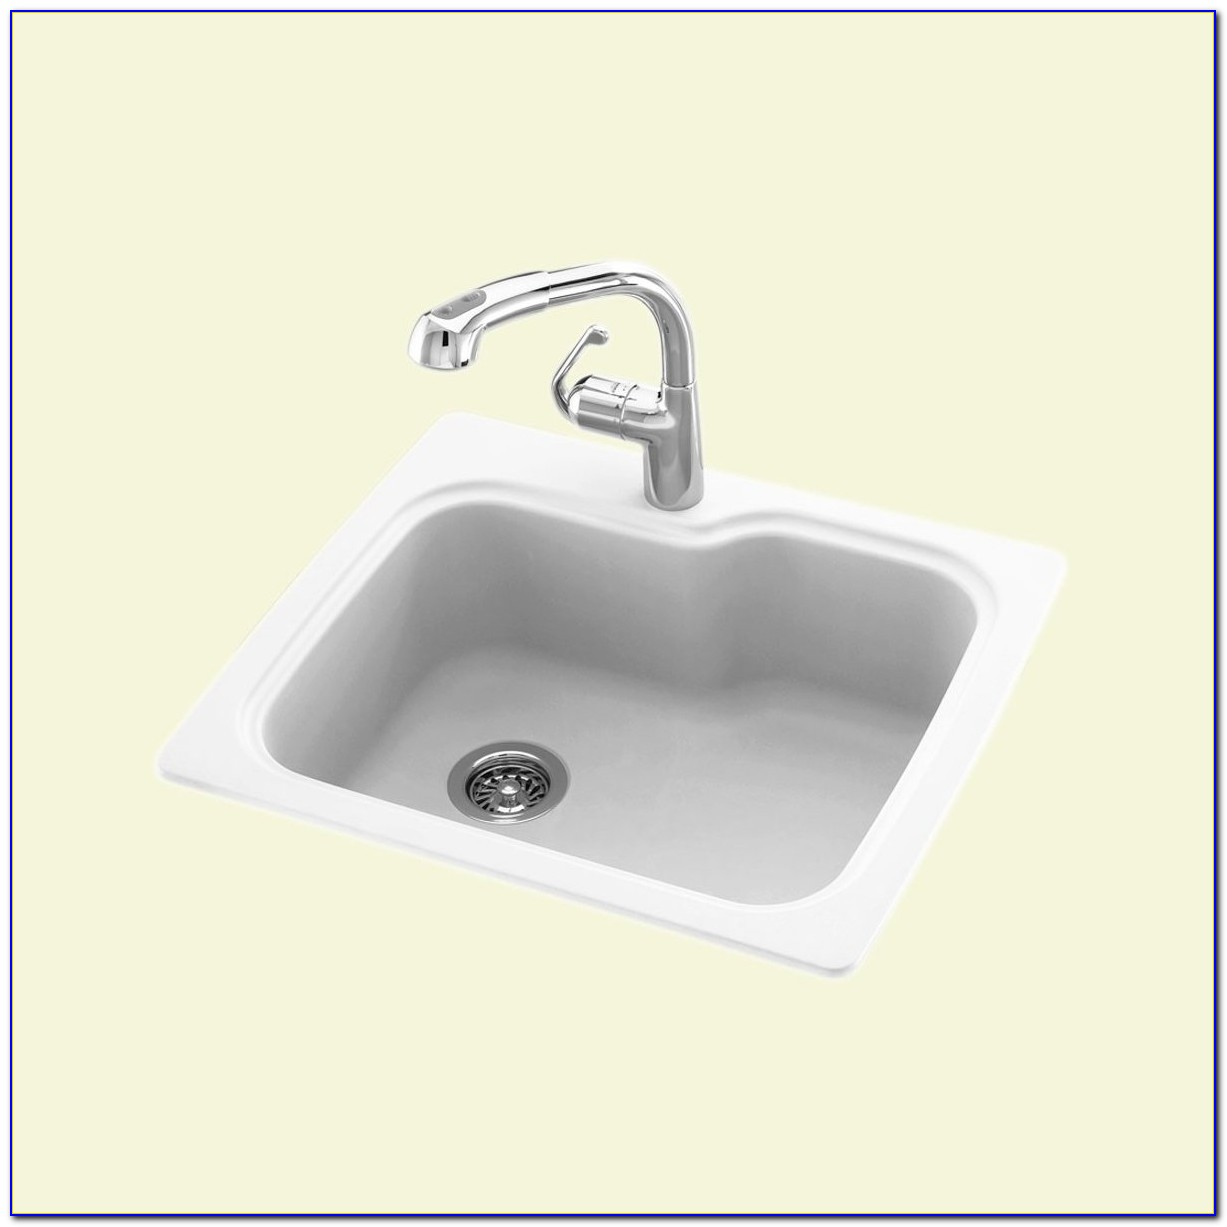 Swanstone Kitchen Sink Accessories